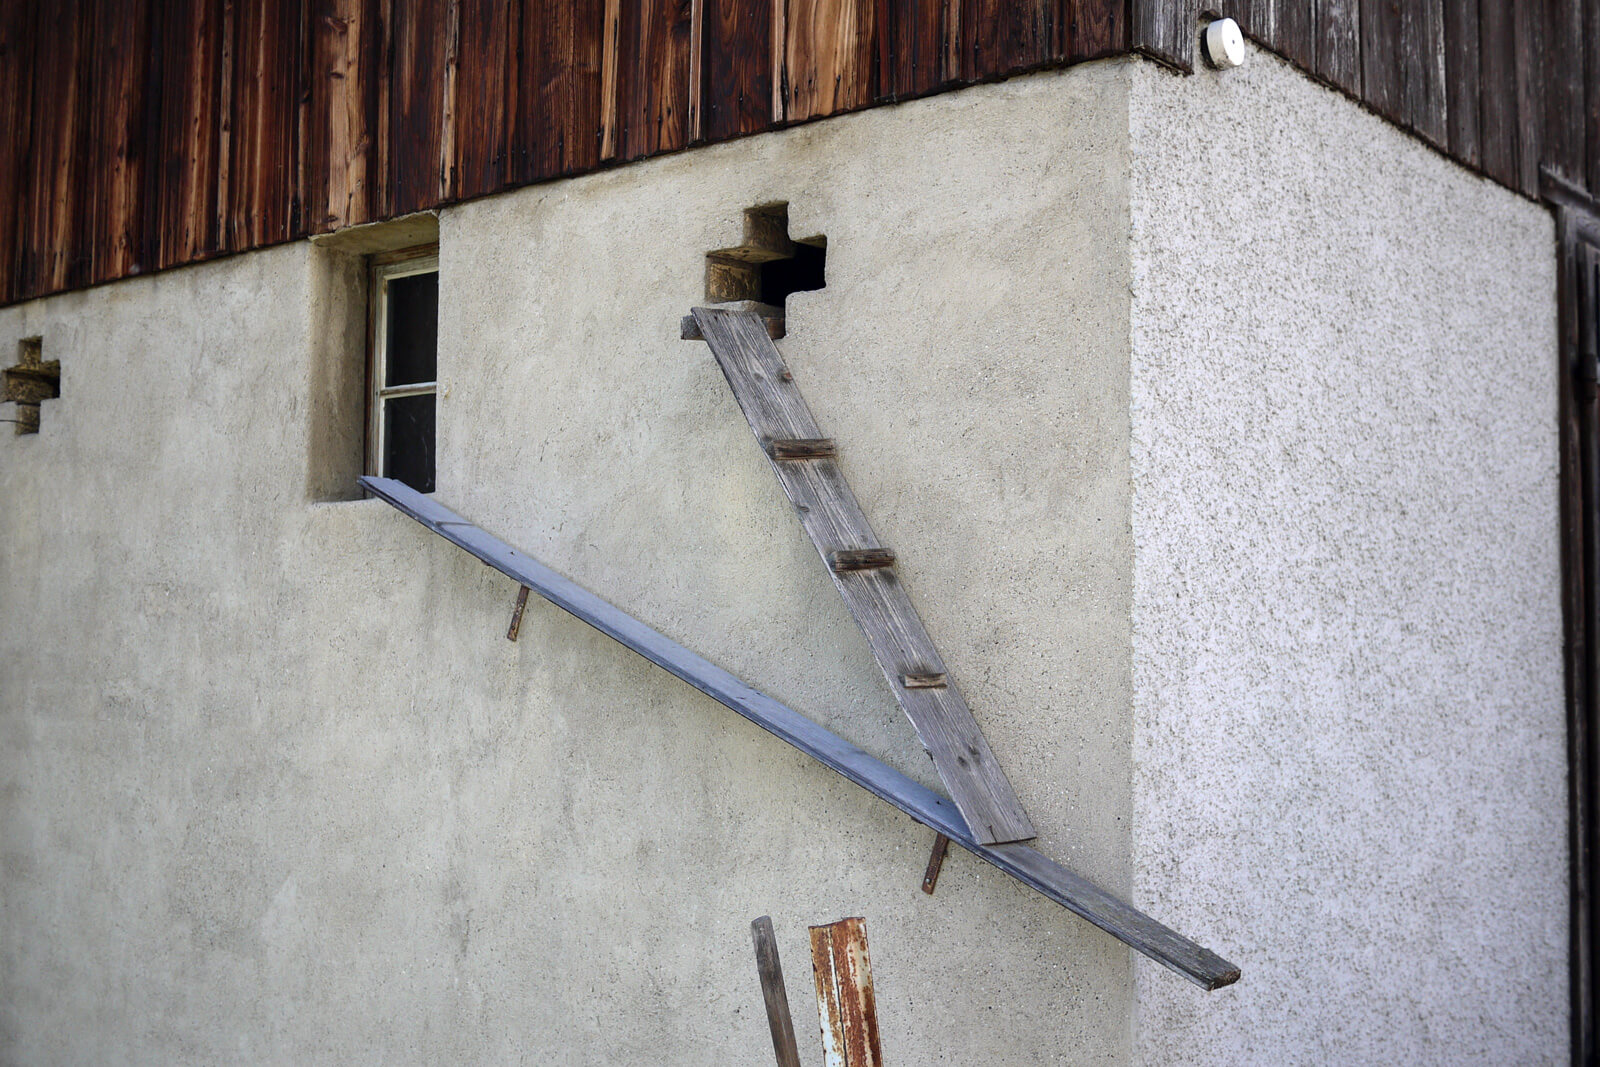 Scary cat ladders in Switzerland